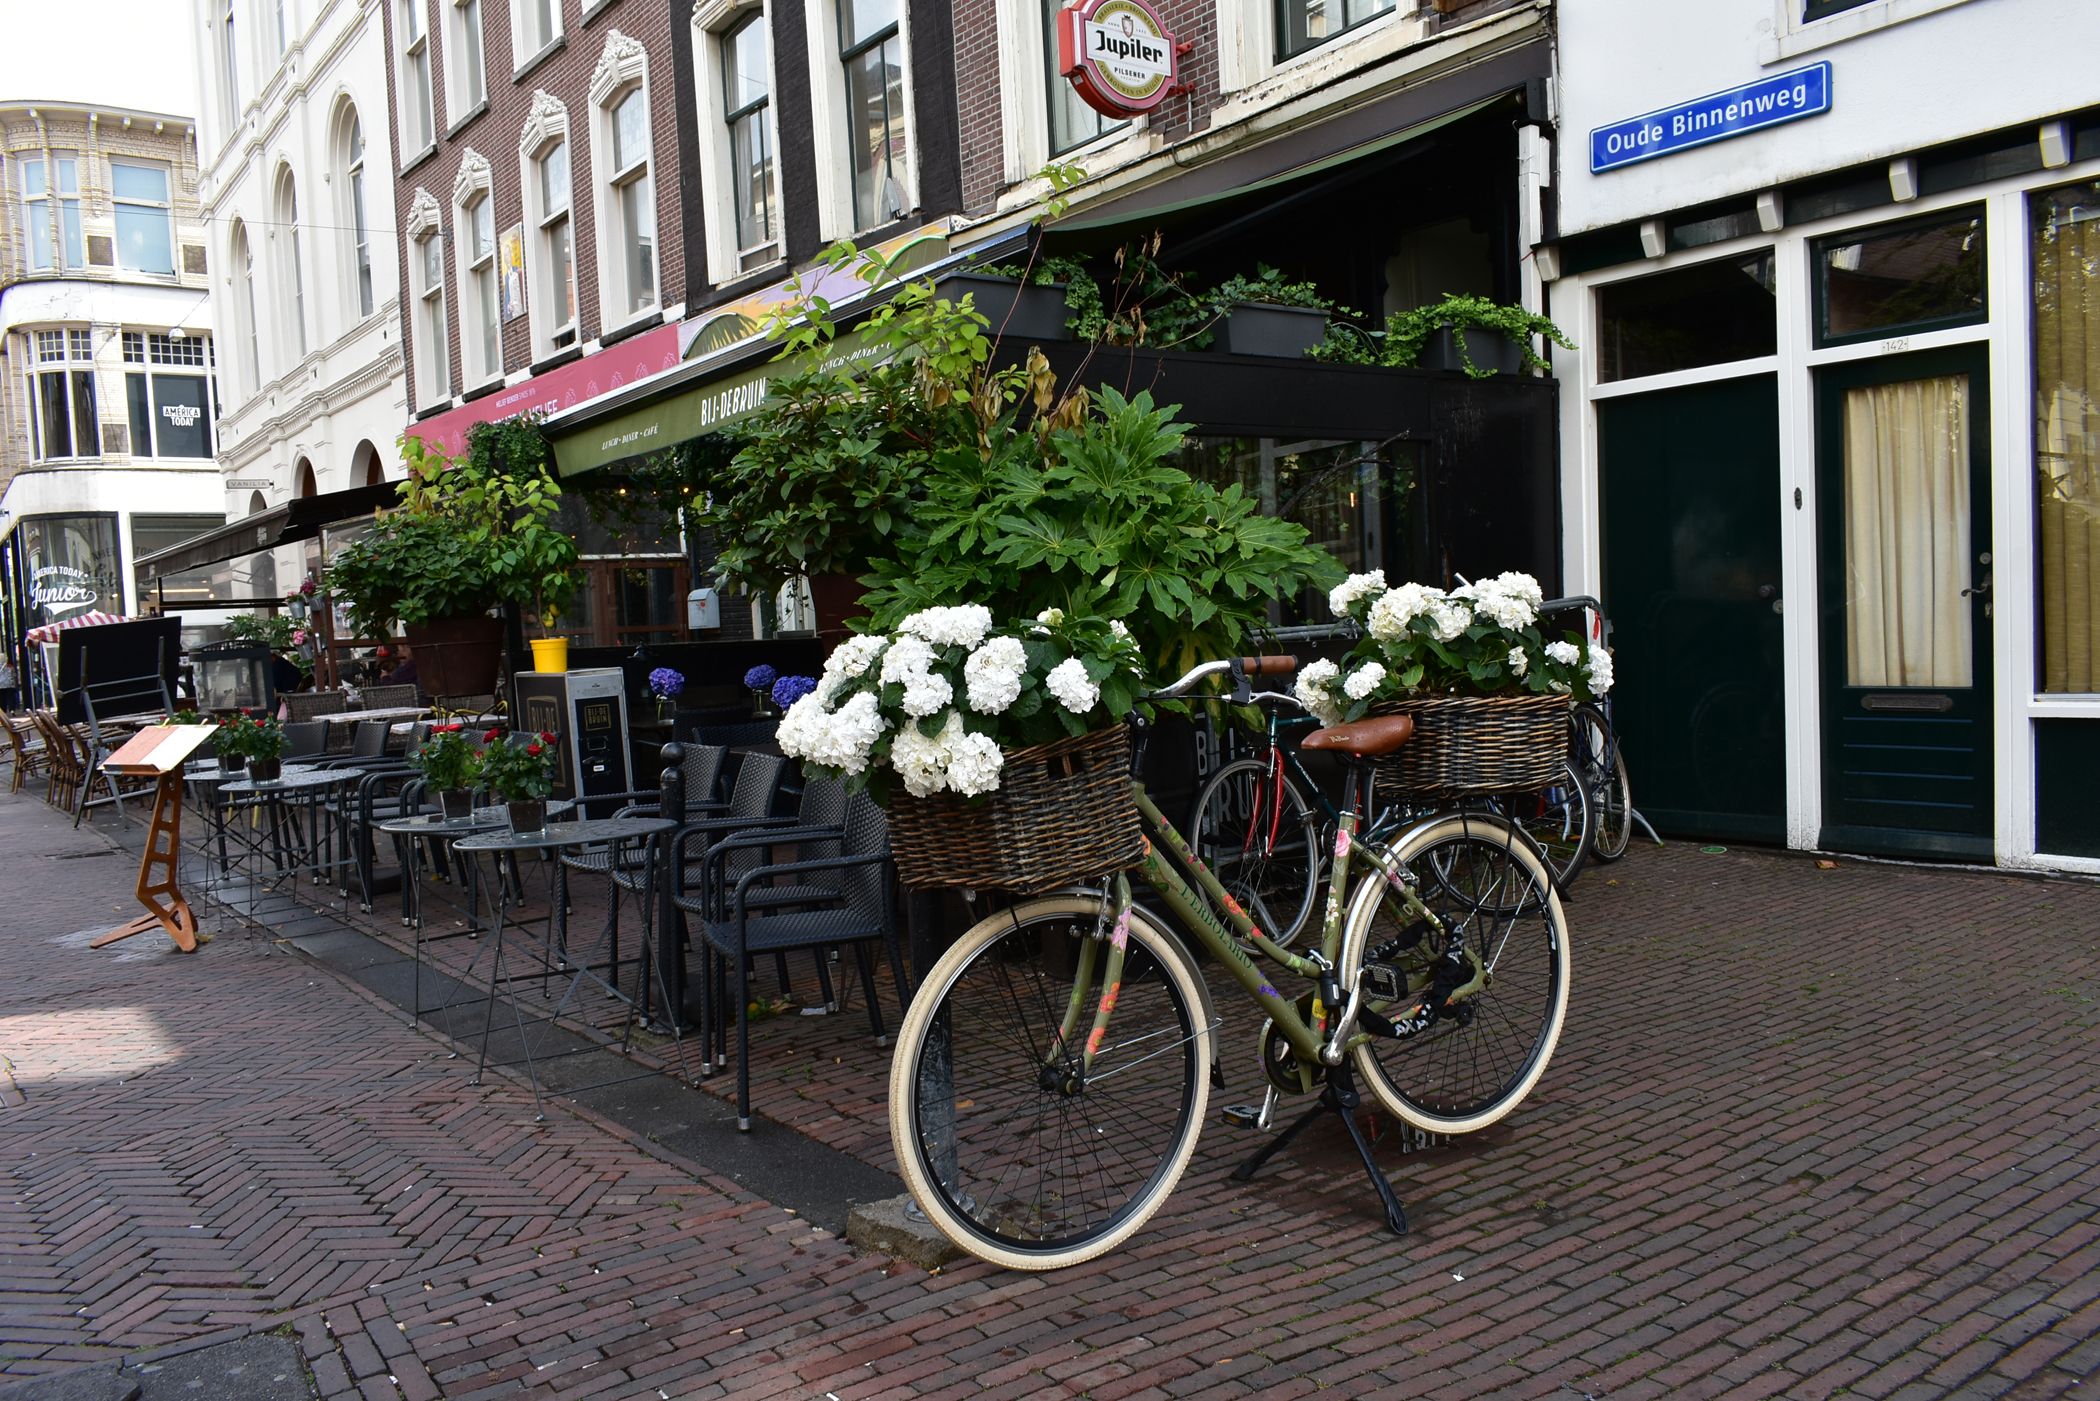 Iconic image of a town in Netherlands - a bicycle by a café terrace.